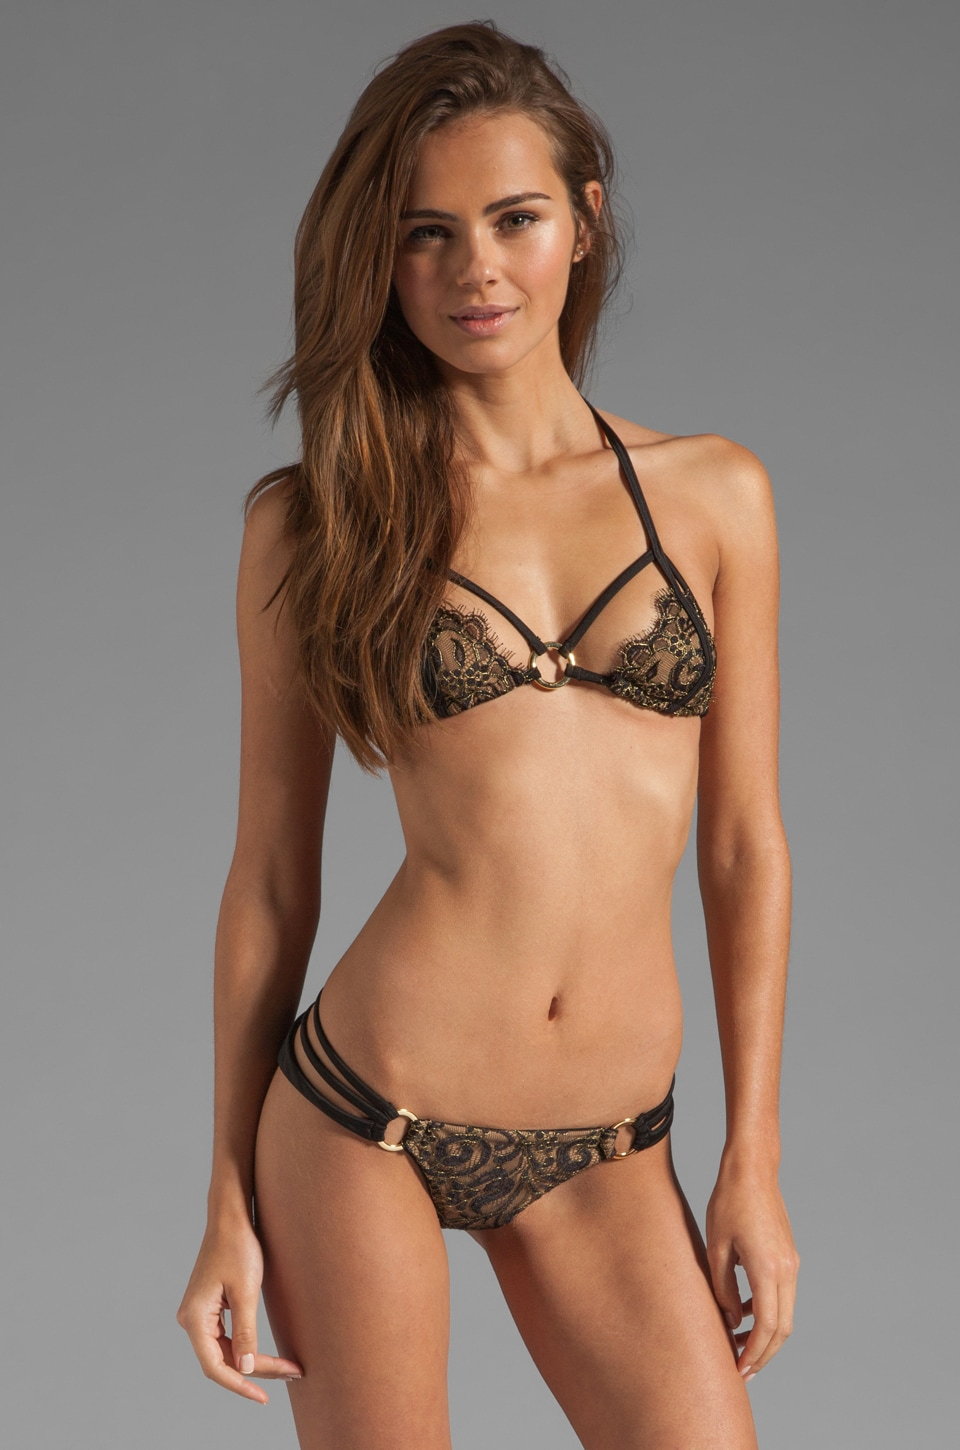 Beach Bunny Gunpowder & Lace Bikini Top in Black